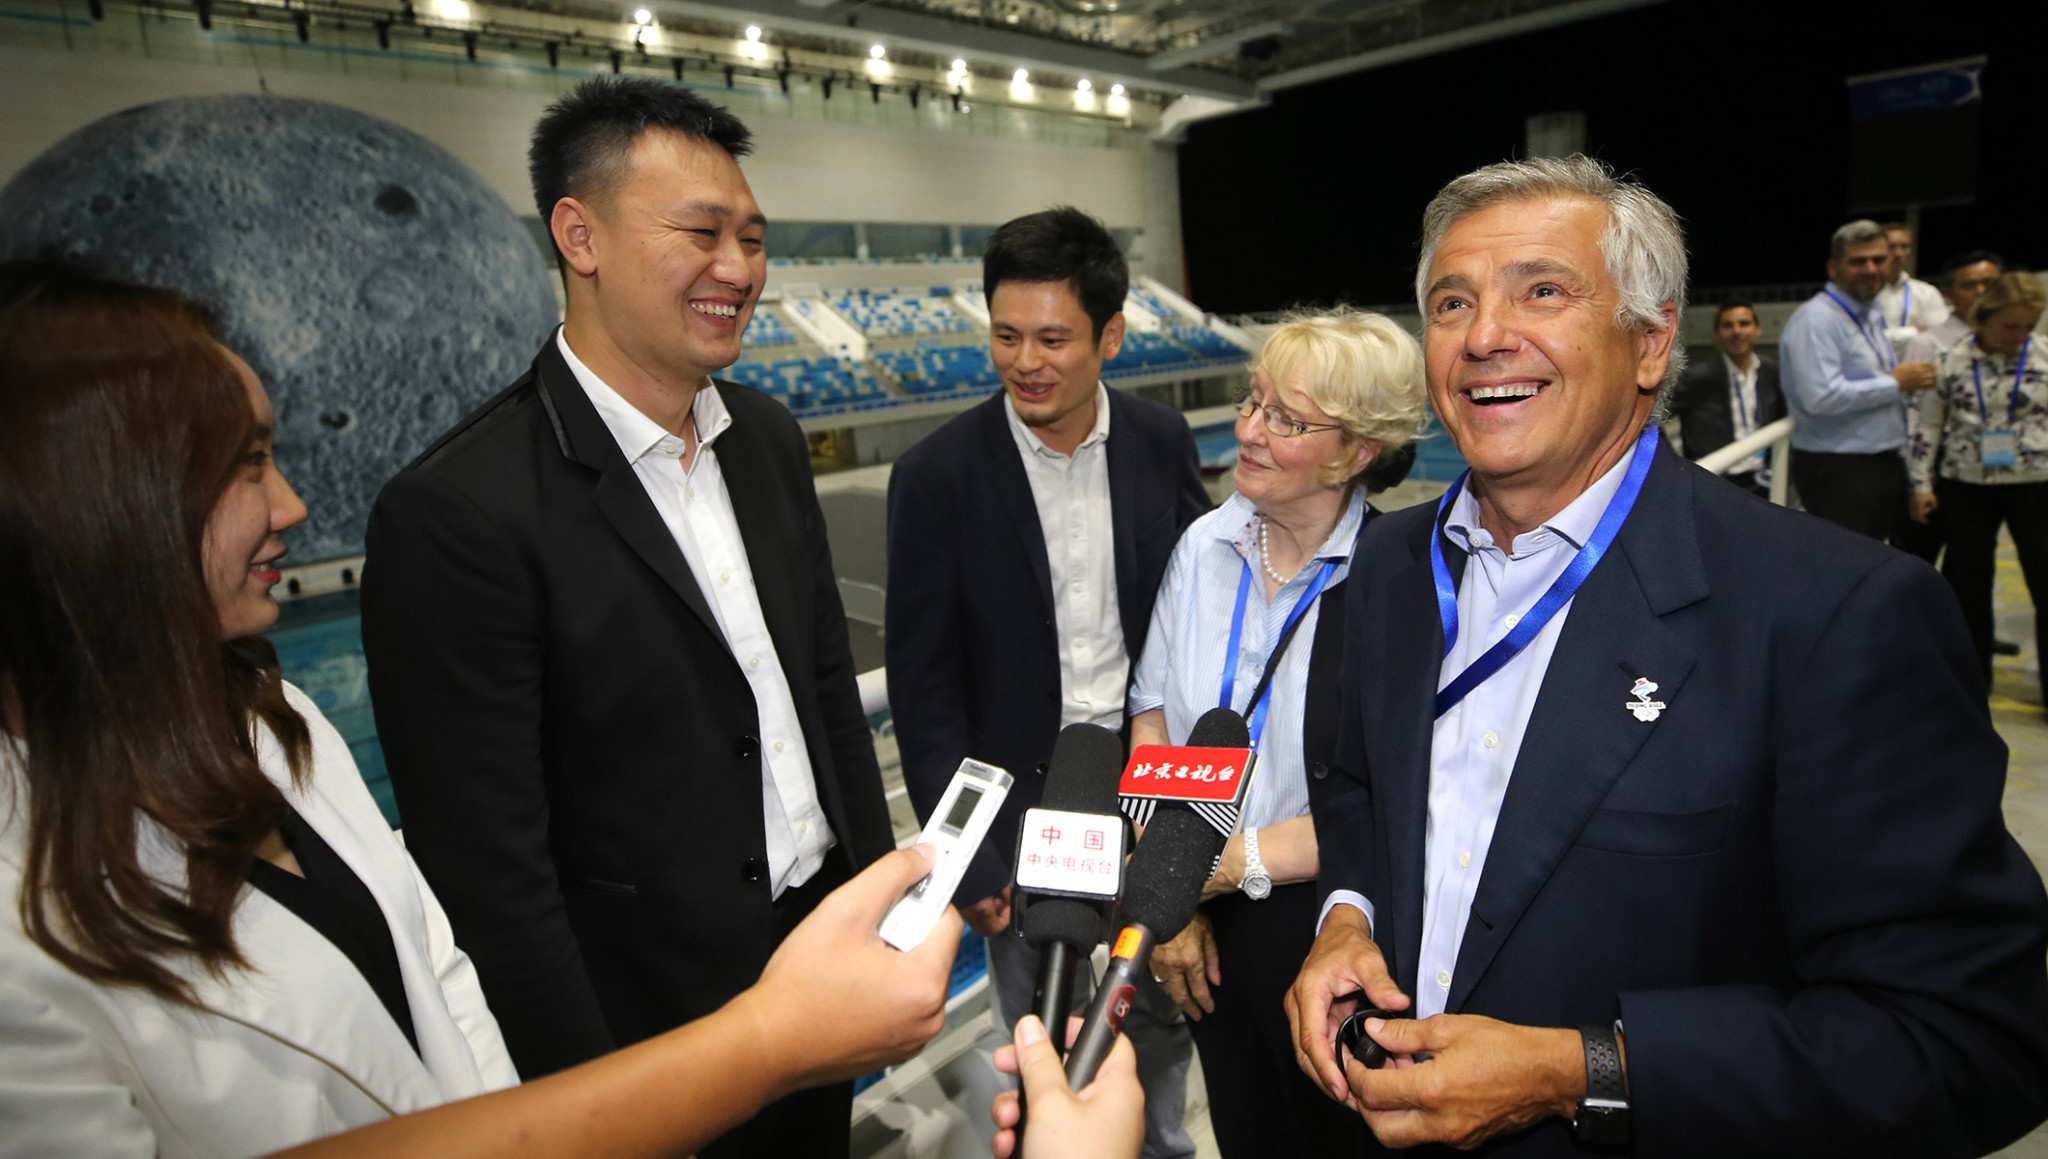 Coordination Commission chair Juan Antonio Samaranch claimed he was very confident in Beijing 2022's preparations ©IOC